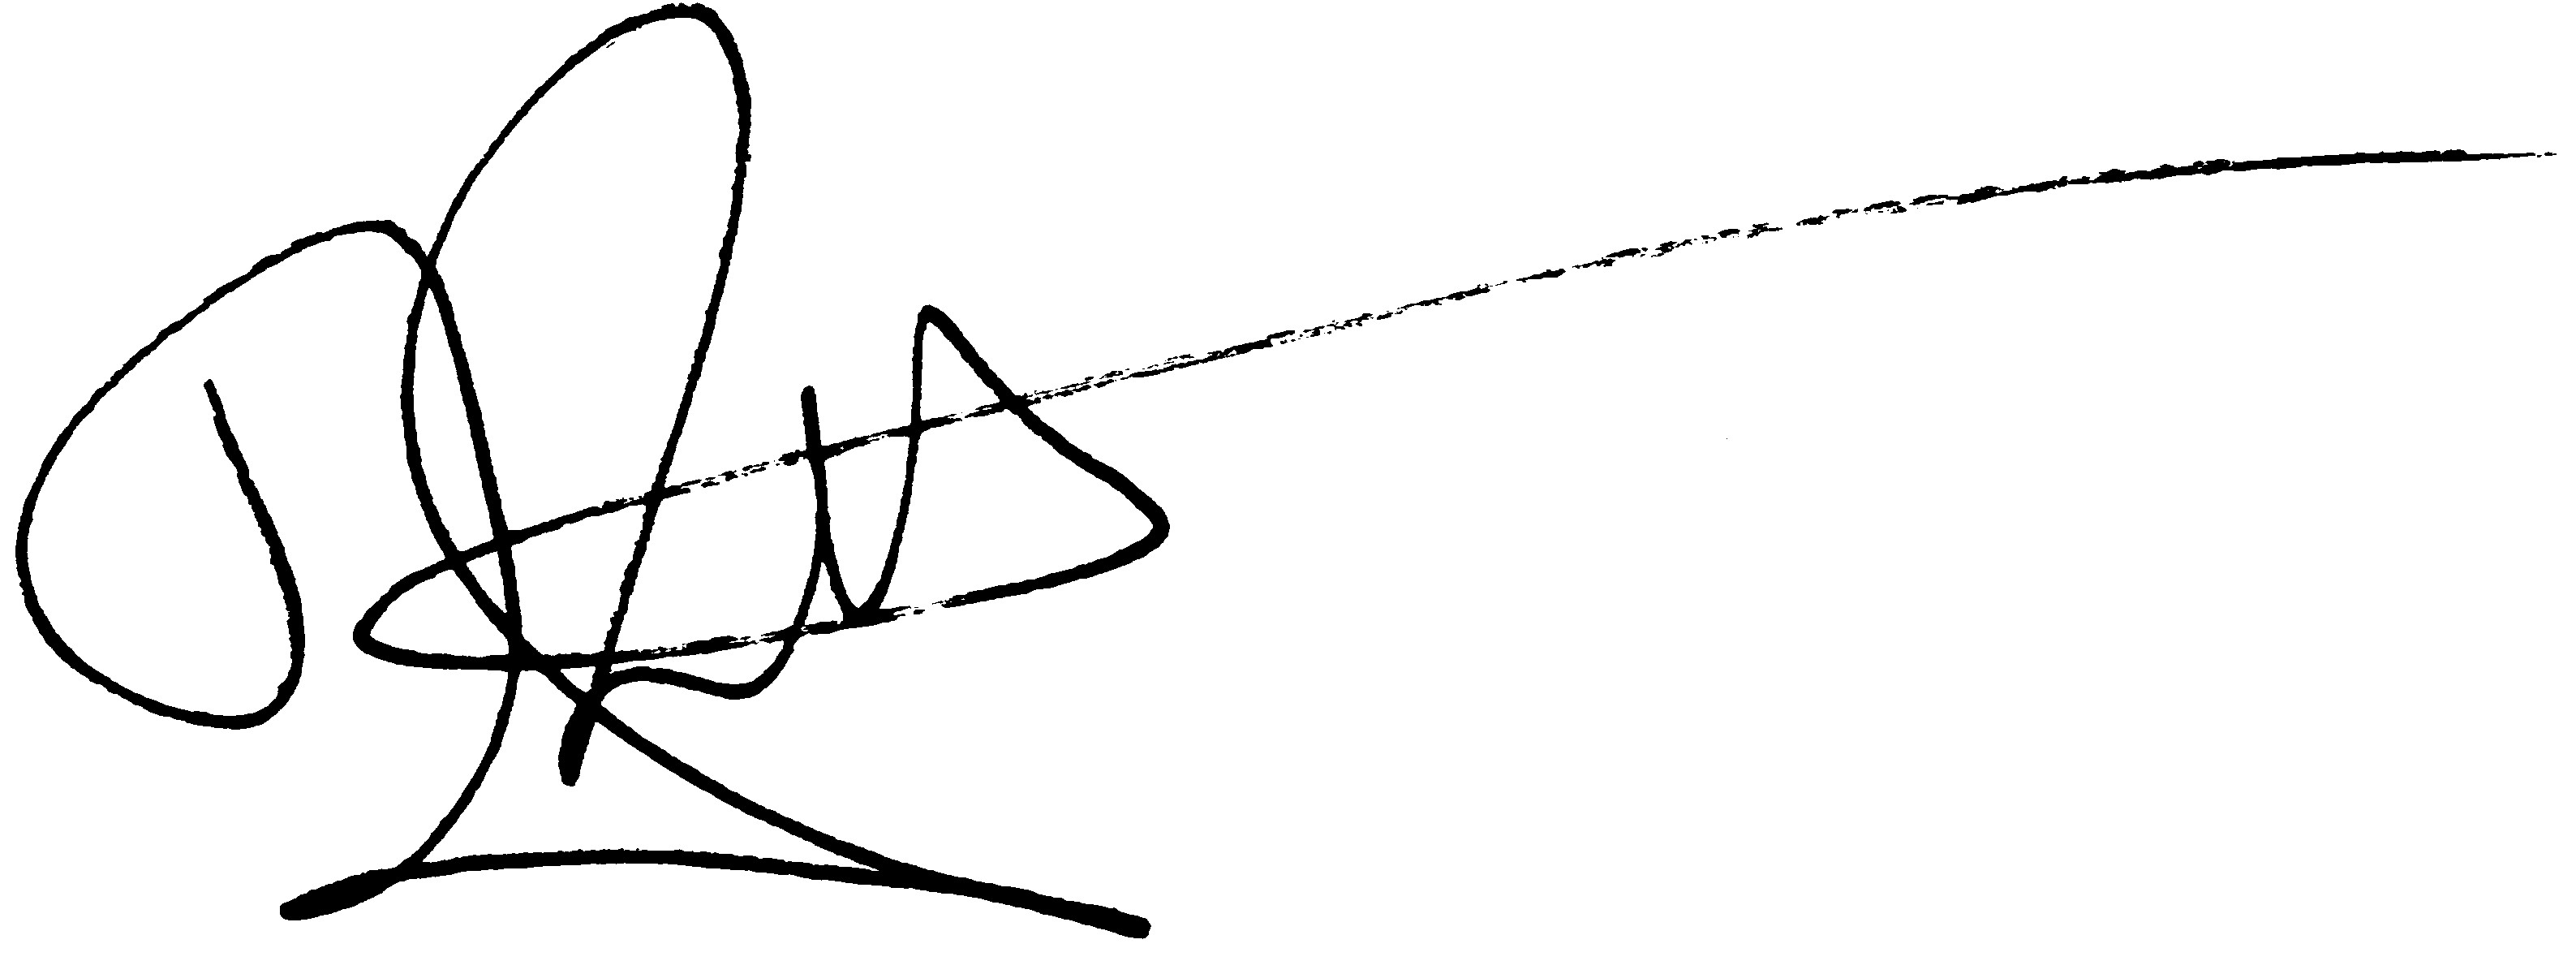 how to write an electronic signature in word